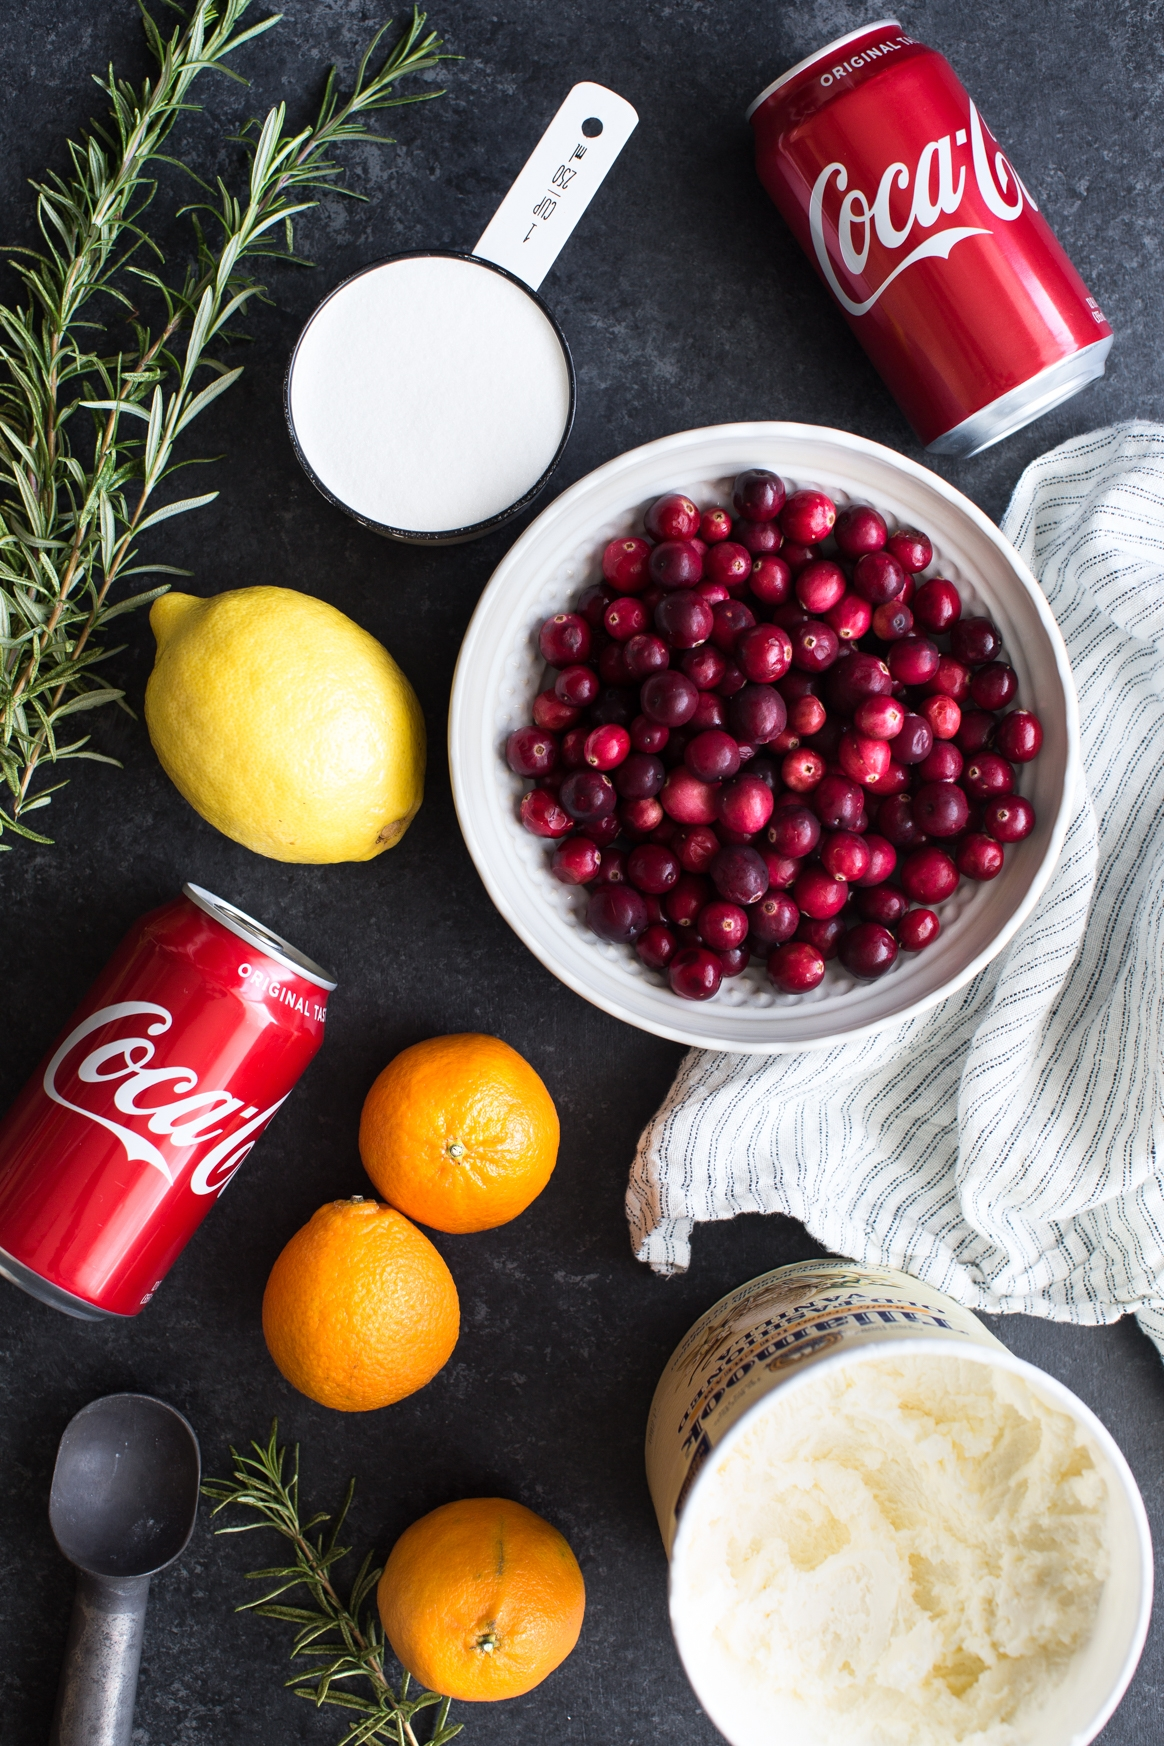 Sparkling Cranberry and Cola Ice Cream Float Ingredients